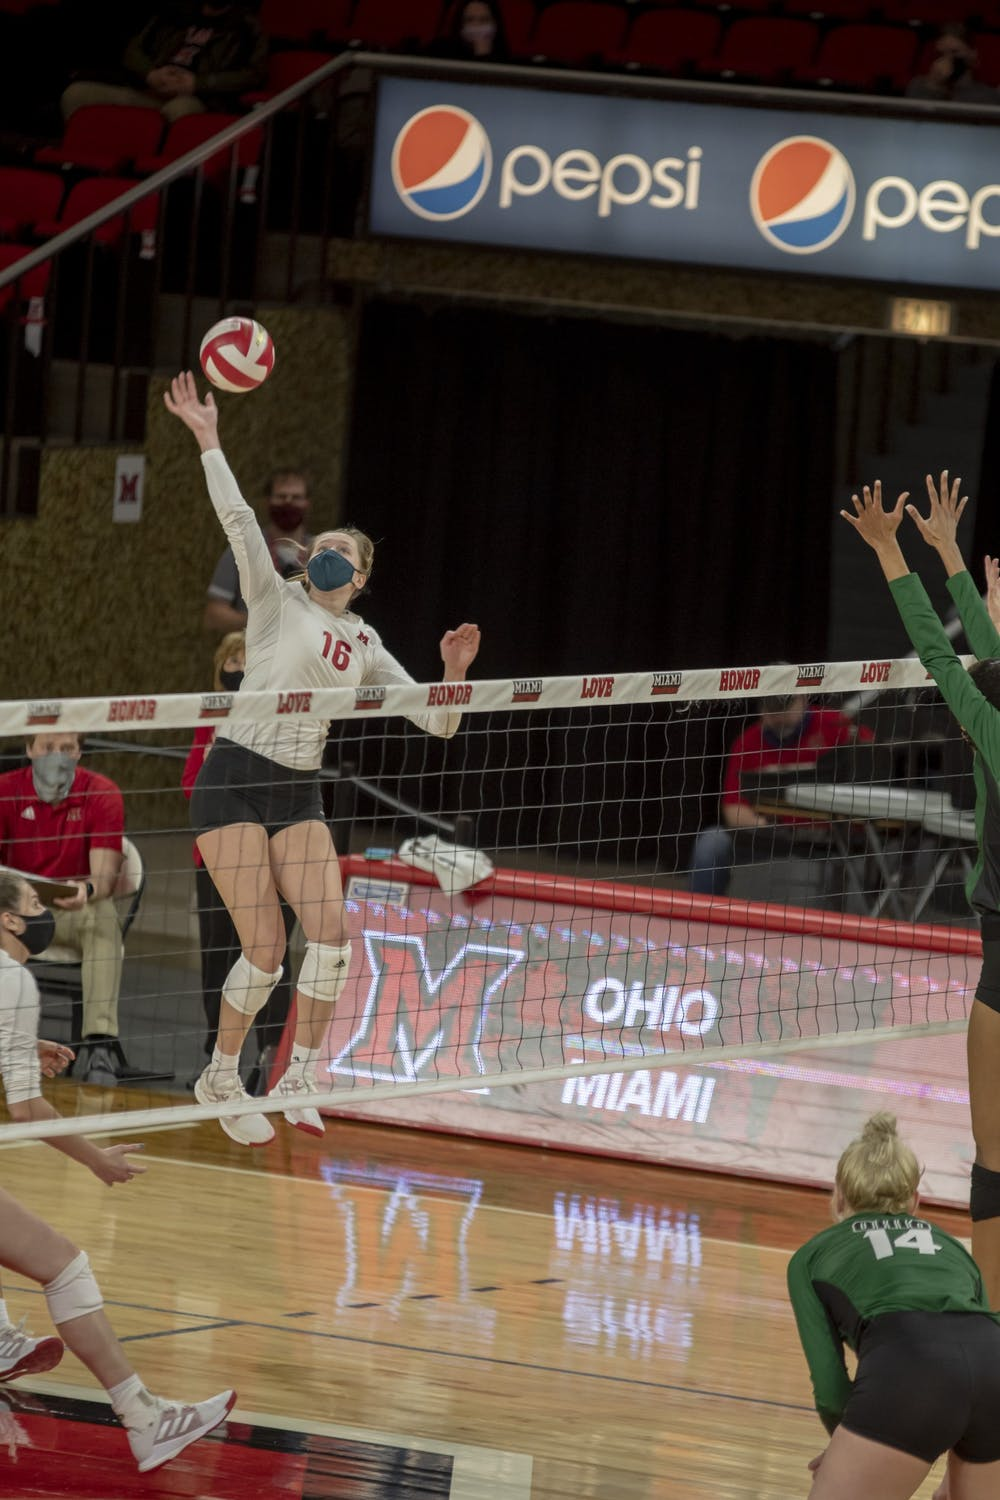 Senior right side Sophie Riemersma goes up for a spike in last year's contest vs. Ohio University.